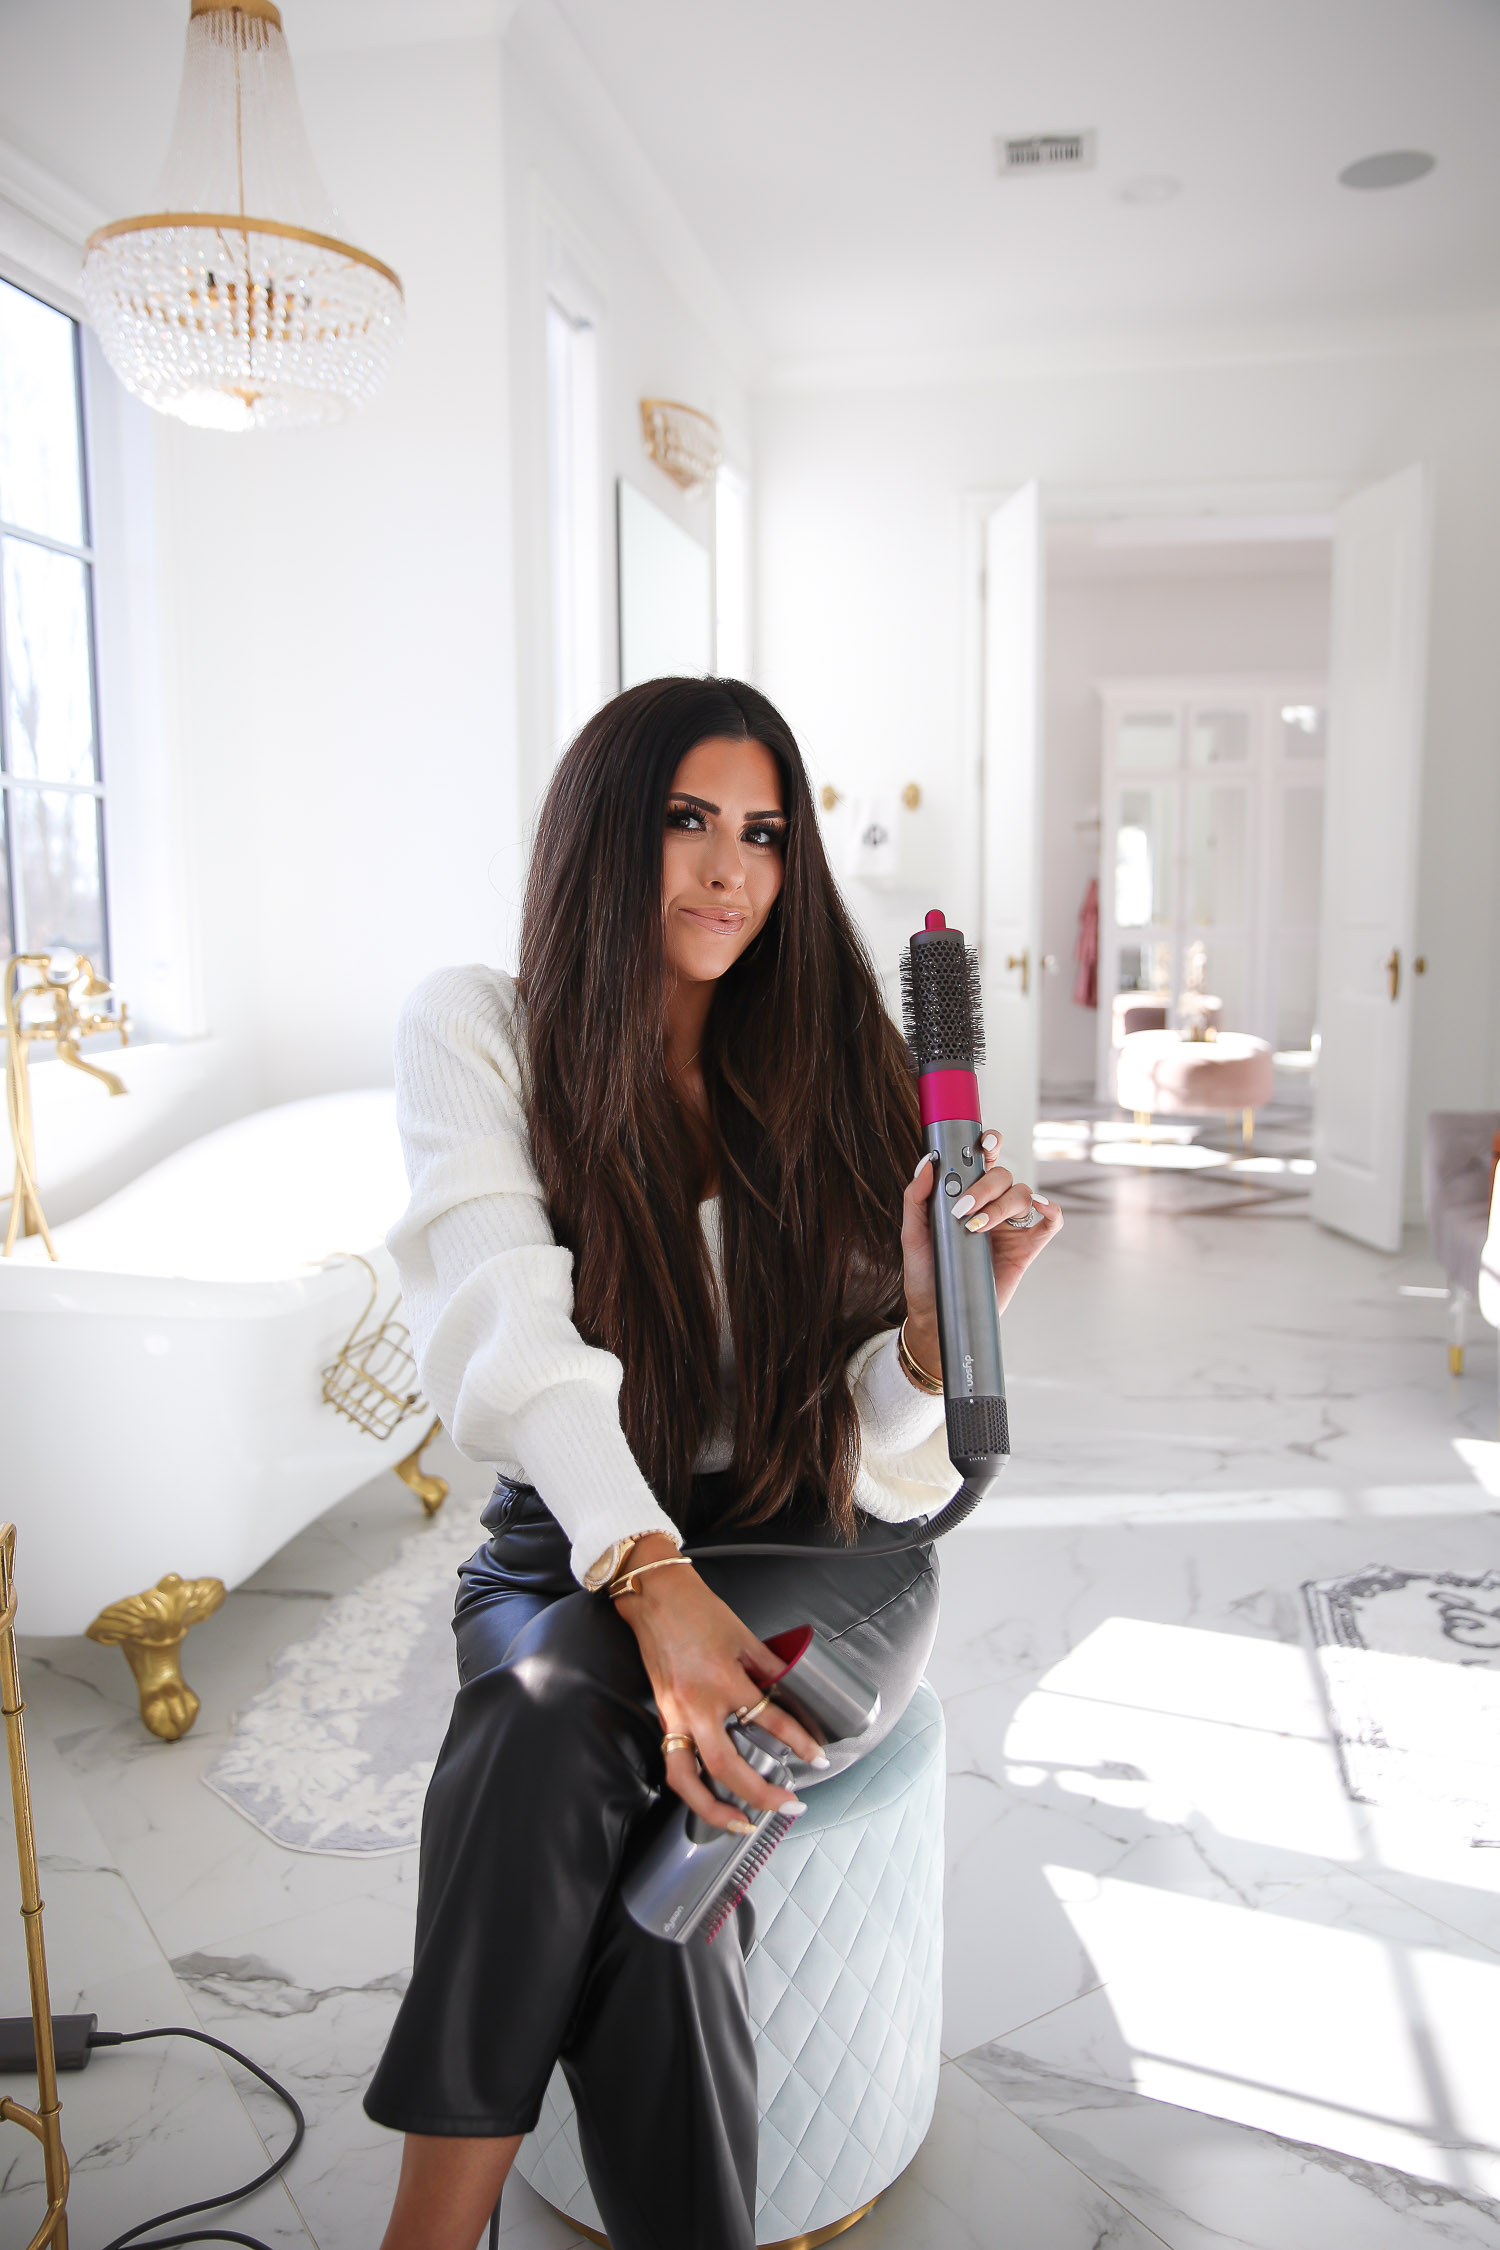 dyson airwrap review tutorial, how to curl hair with dyson air wrap, emily gemma_-4 |Dyson Air Wrap by popular US beauty blog, The Sweetest Thing: image of Emily Gemma wearing a white sweater, black faux leather pants, and Balenciaga shoes and holding a Dyson Air Wrap hair styler.